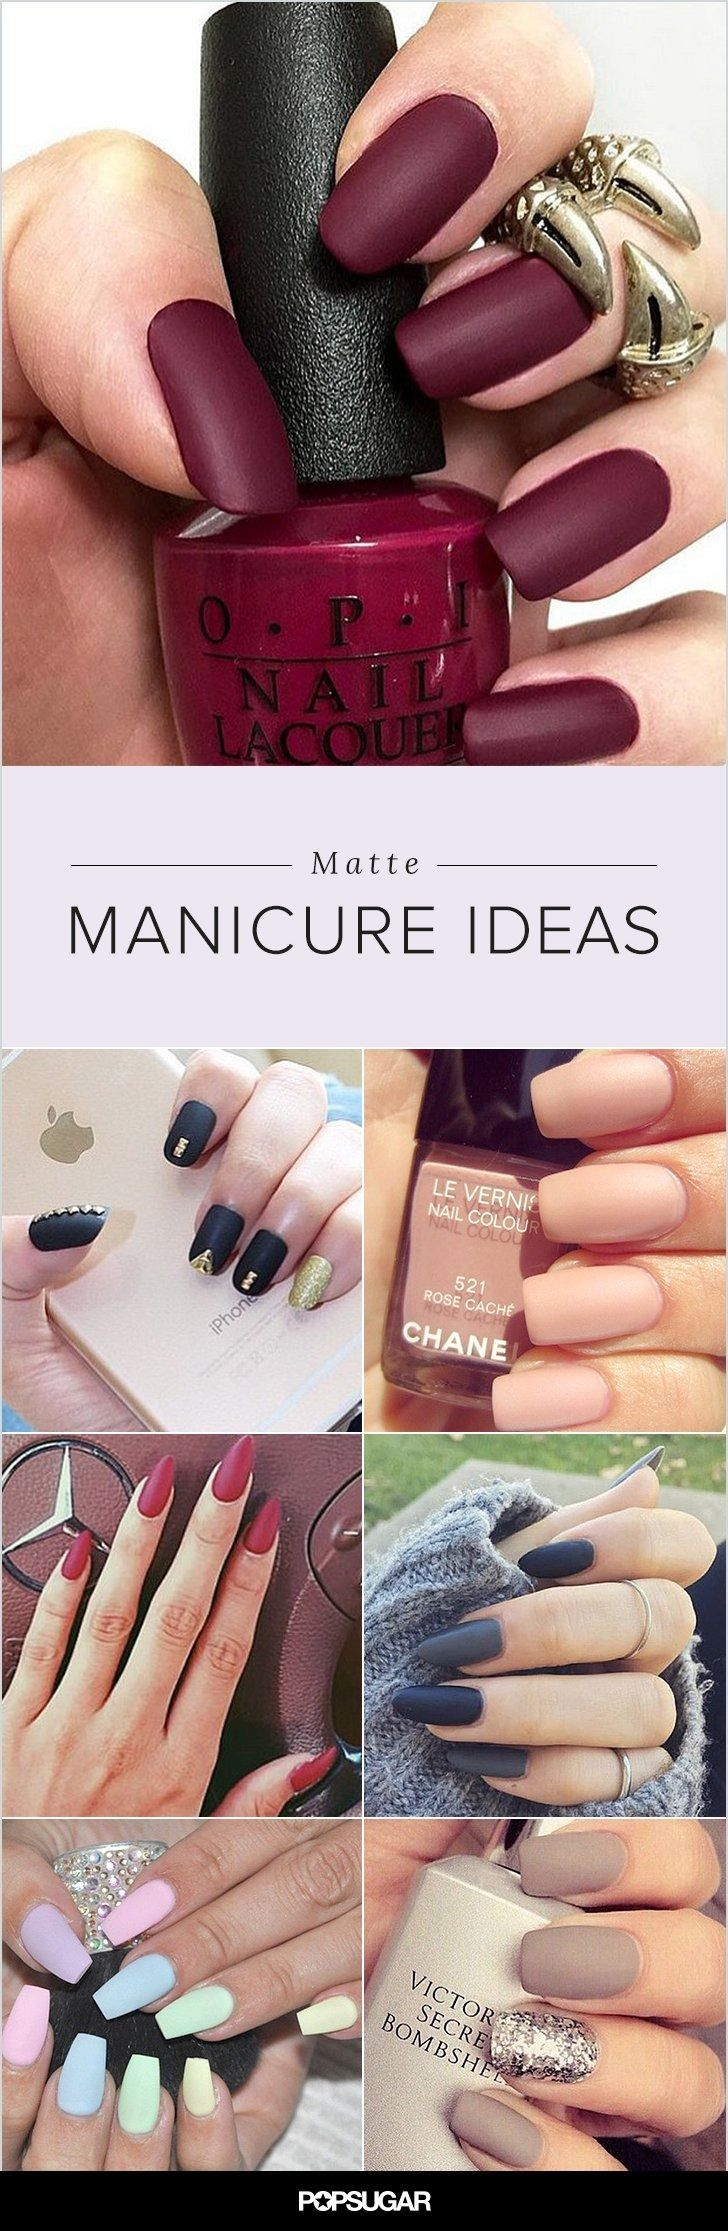 While you may have thought matte manicures hit their peak in 2010, the nail pros of Instagram are proving otherwise. Patterns, accents, and different nail shapes prove that this fun lacquer finish is